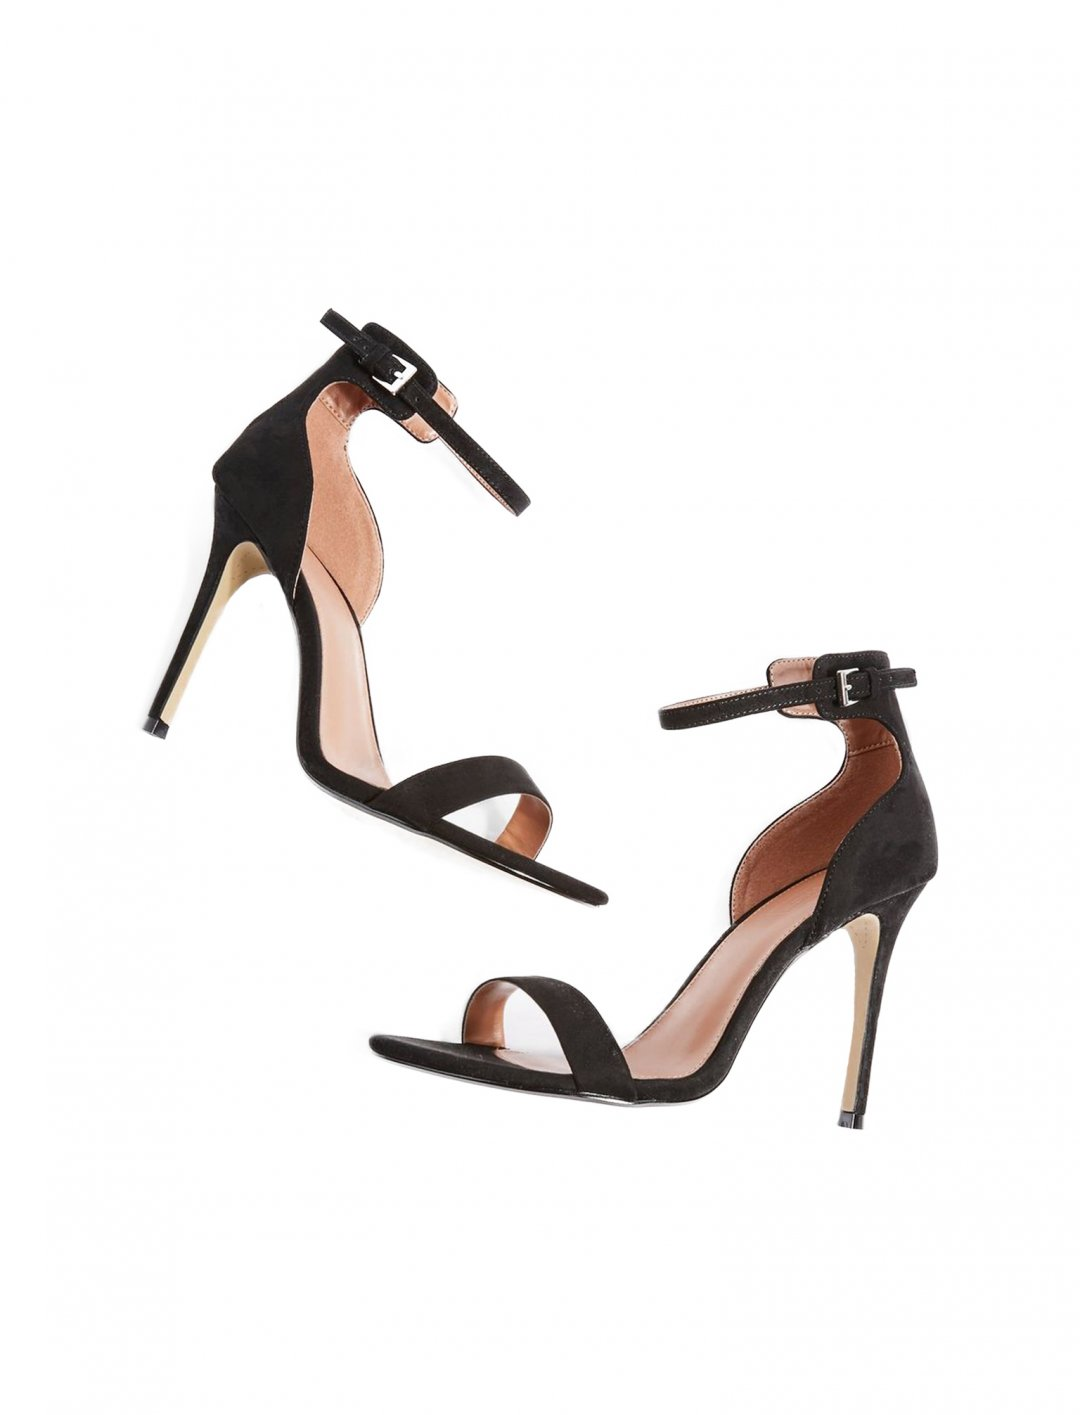 """Topshop Marcelle Two Part Sandals {""""id"""":12,""""product_section_id"""":1,""""name"""":""""Shoes"""",""""order"""":12} Topshop"""